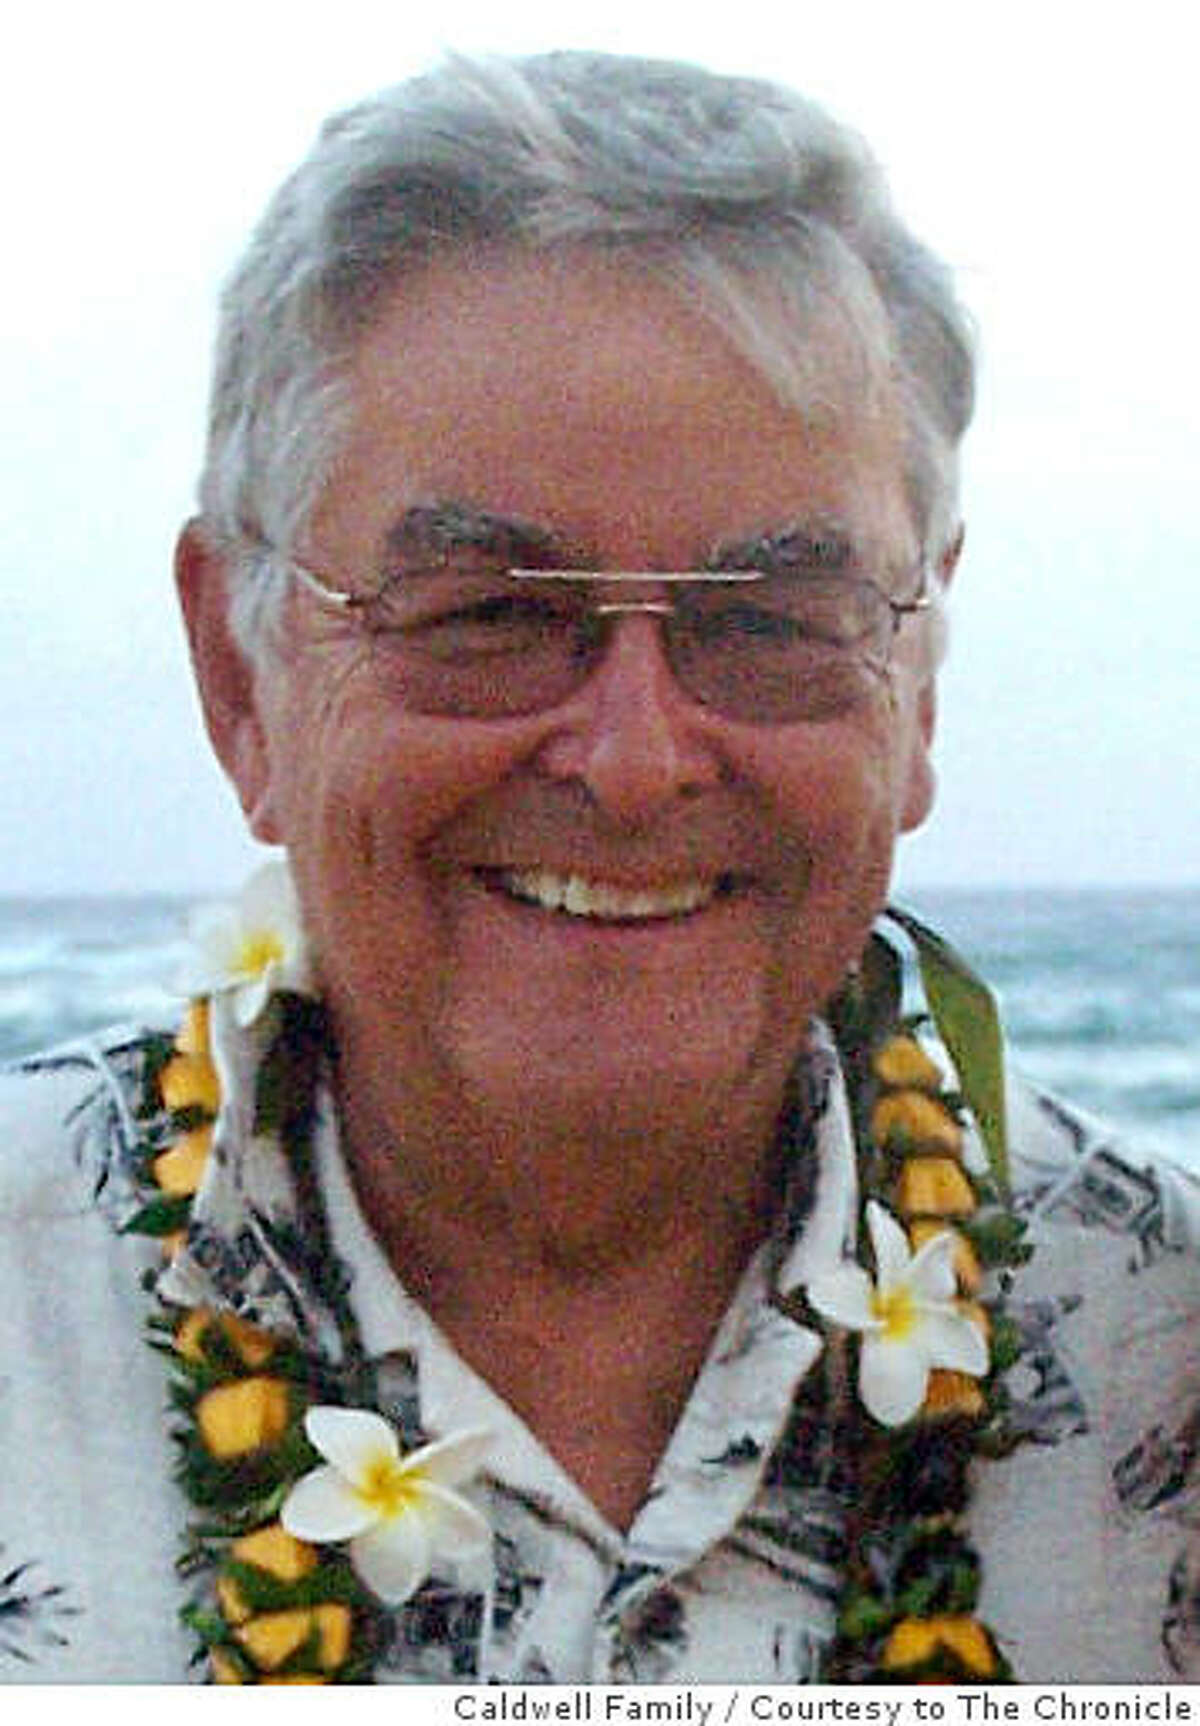 Eugene Caldwell, 78, was killed by a police horse at Candlestick Park on Friday, August 29, 2008. Caldwell was knocked down by the runaway horse in the charter bus parking lot where he suffered critical injuries after hitting his head.